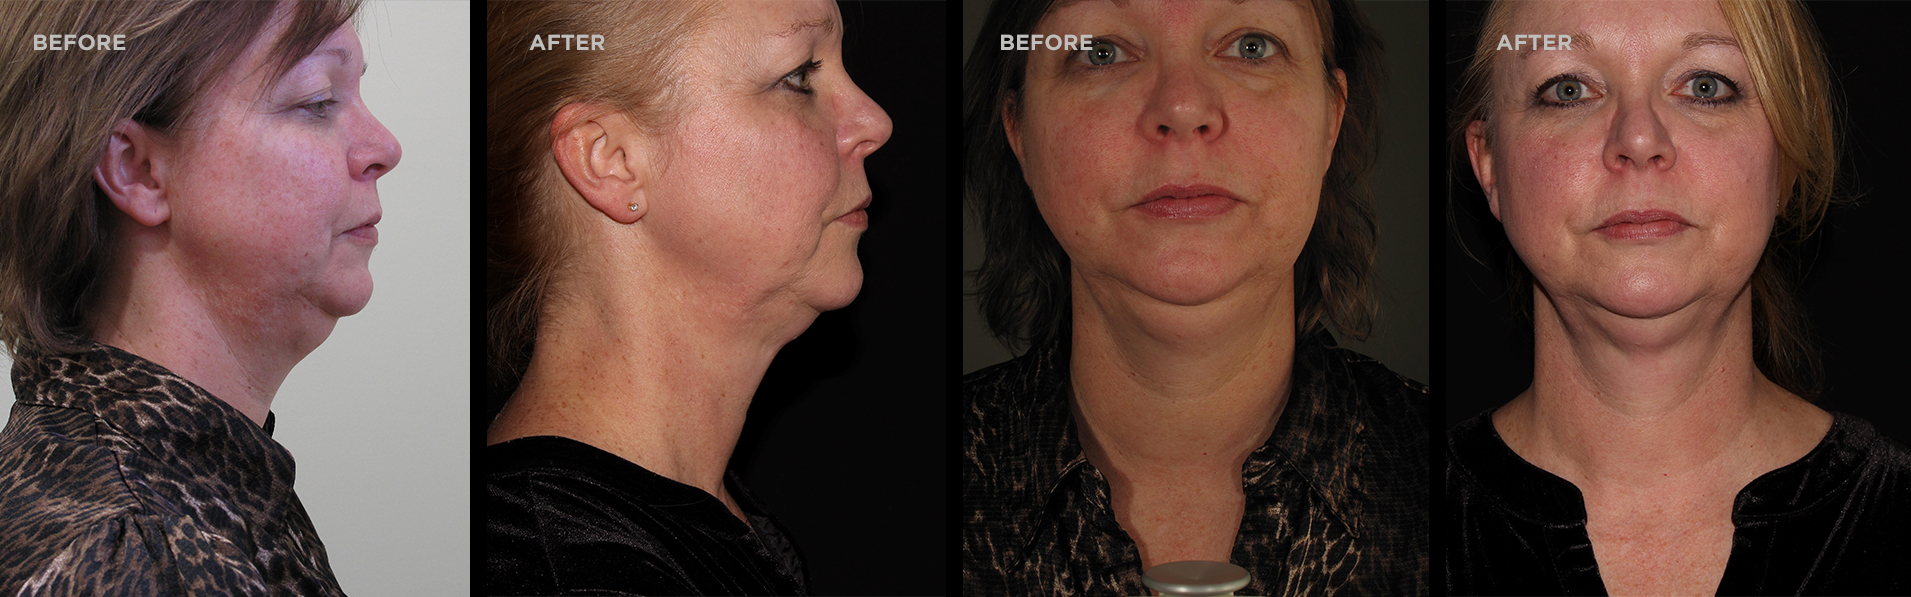 Before and after pictures of a woman after receiving treatment at New Image LSC.